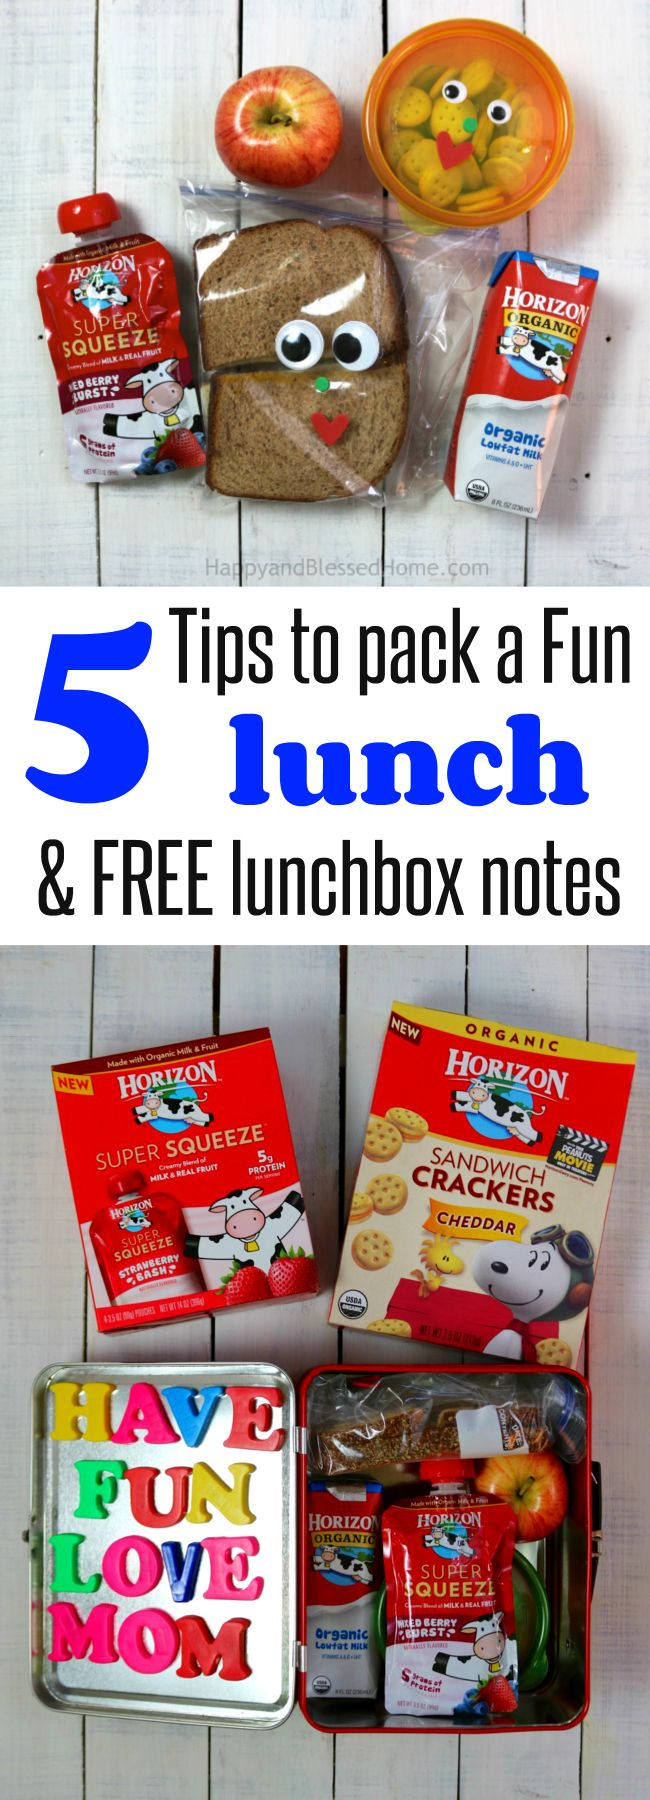 Such great and simple ideas for packing a kid's lunch - plus 15 FREE printable different lunchbox note cards - how clever! Family fun in a lunchbox.